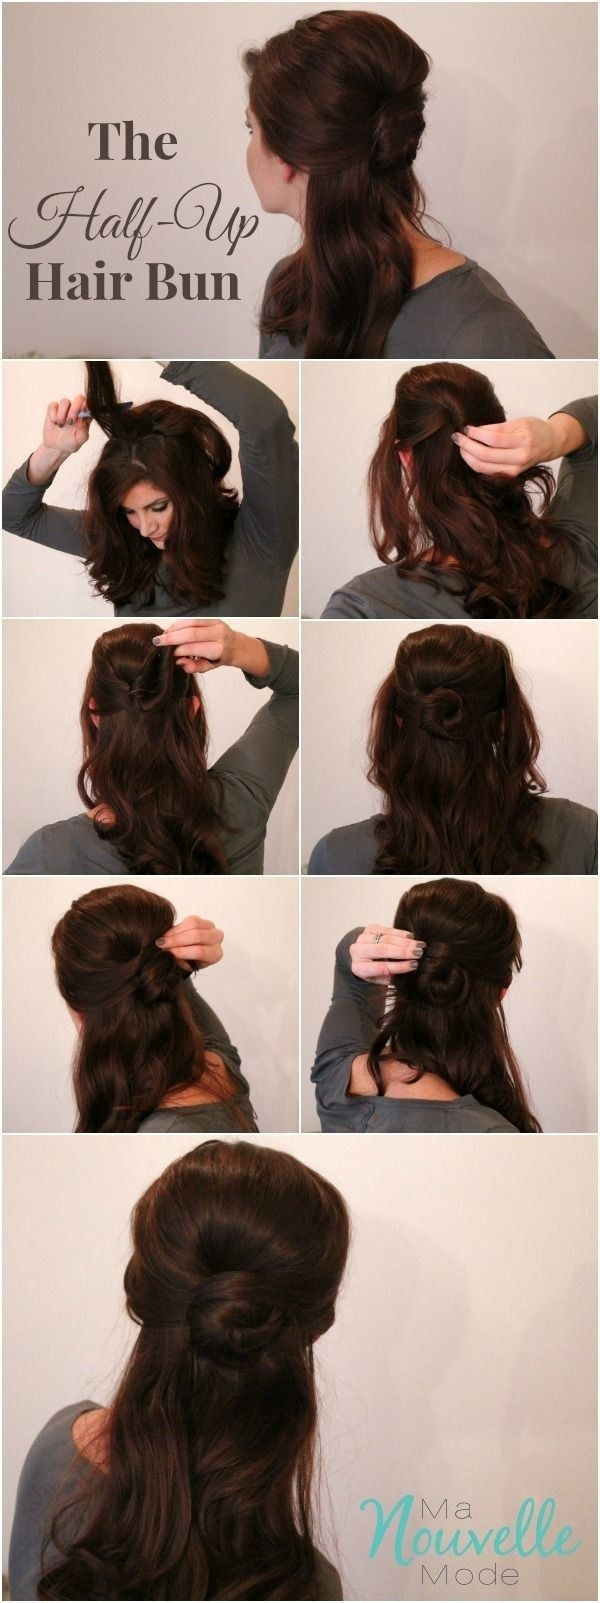 22 Fabulous Half Up Half Down Hairstyles 2018 Step By